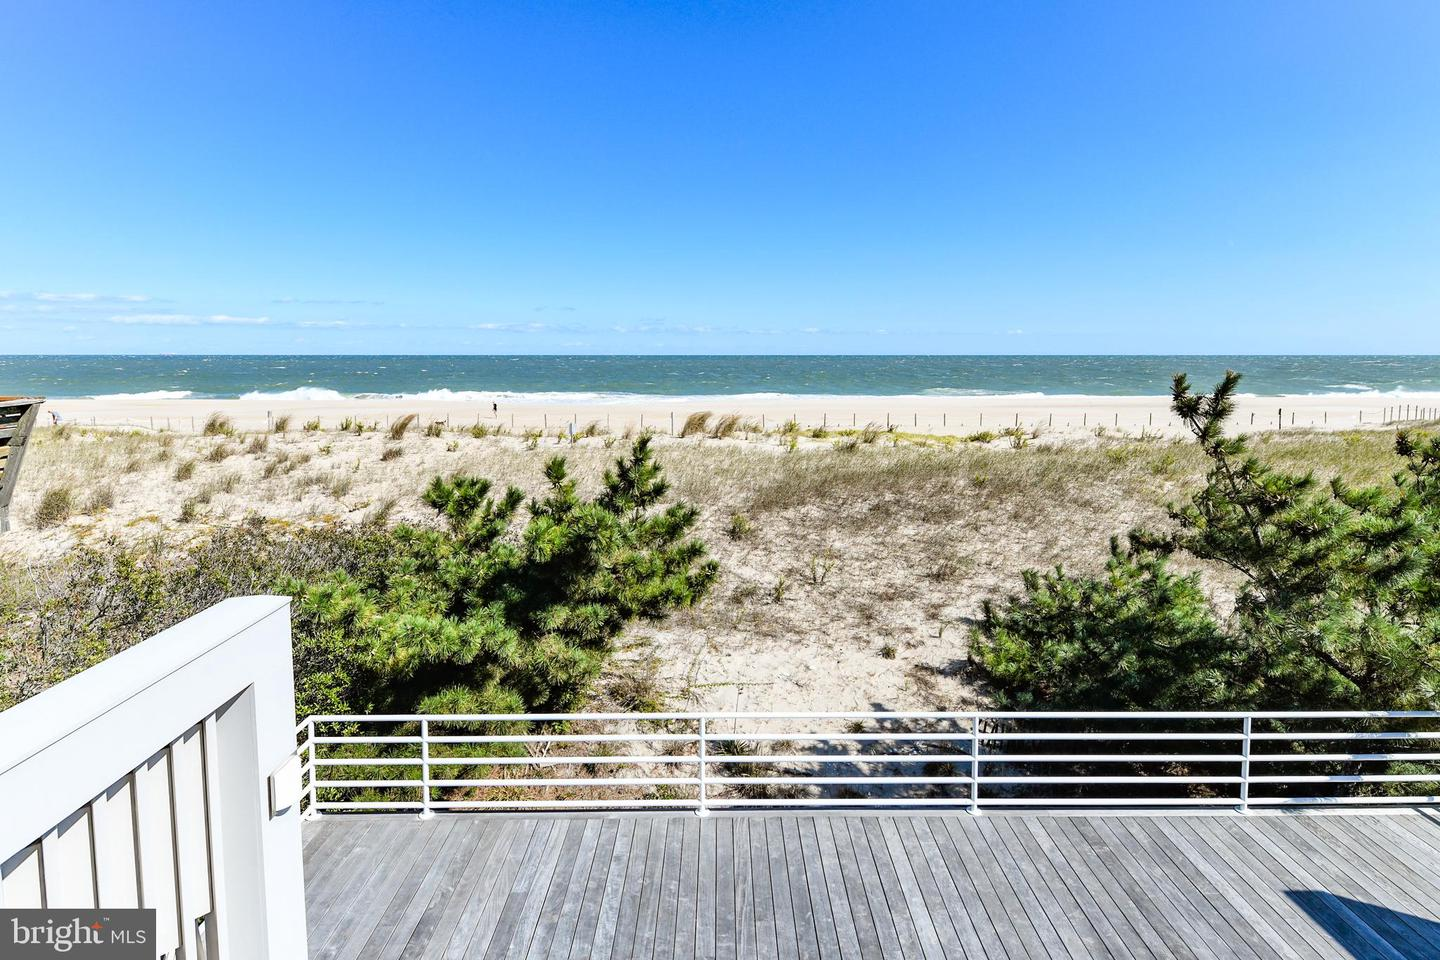 DESU149860-302120925889-2019-10-17-18-04-15 1203 Bunting Ave | Fenwick Island, De Real Estate For Sale | MLS# Desu149860  - Suzanne Macnab